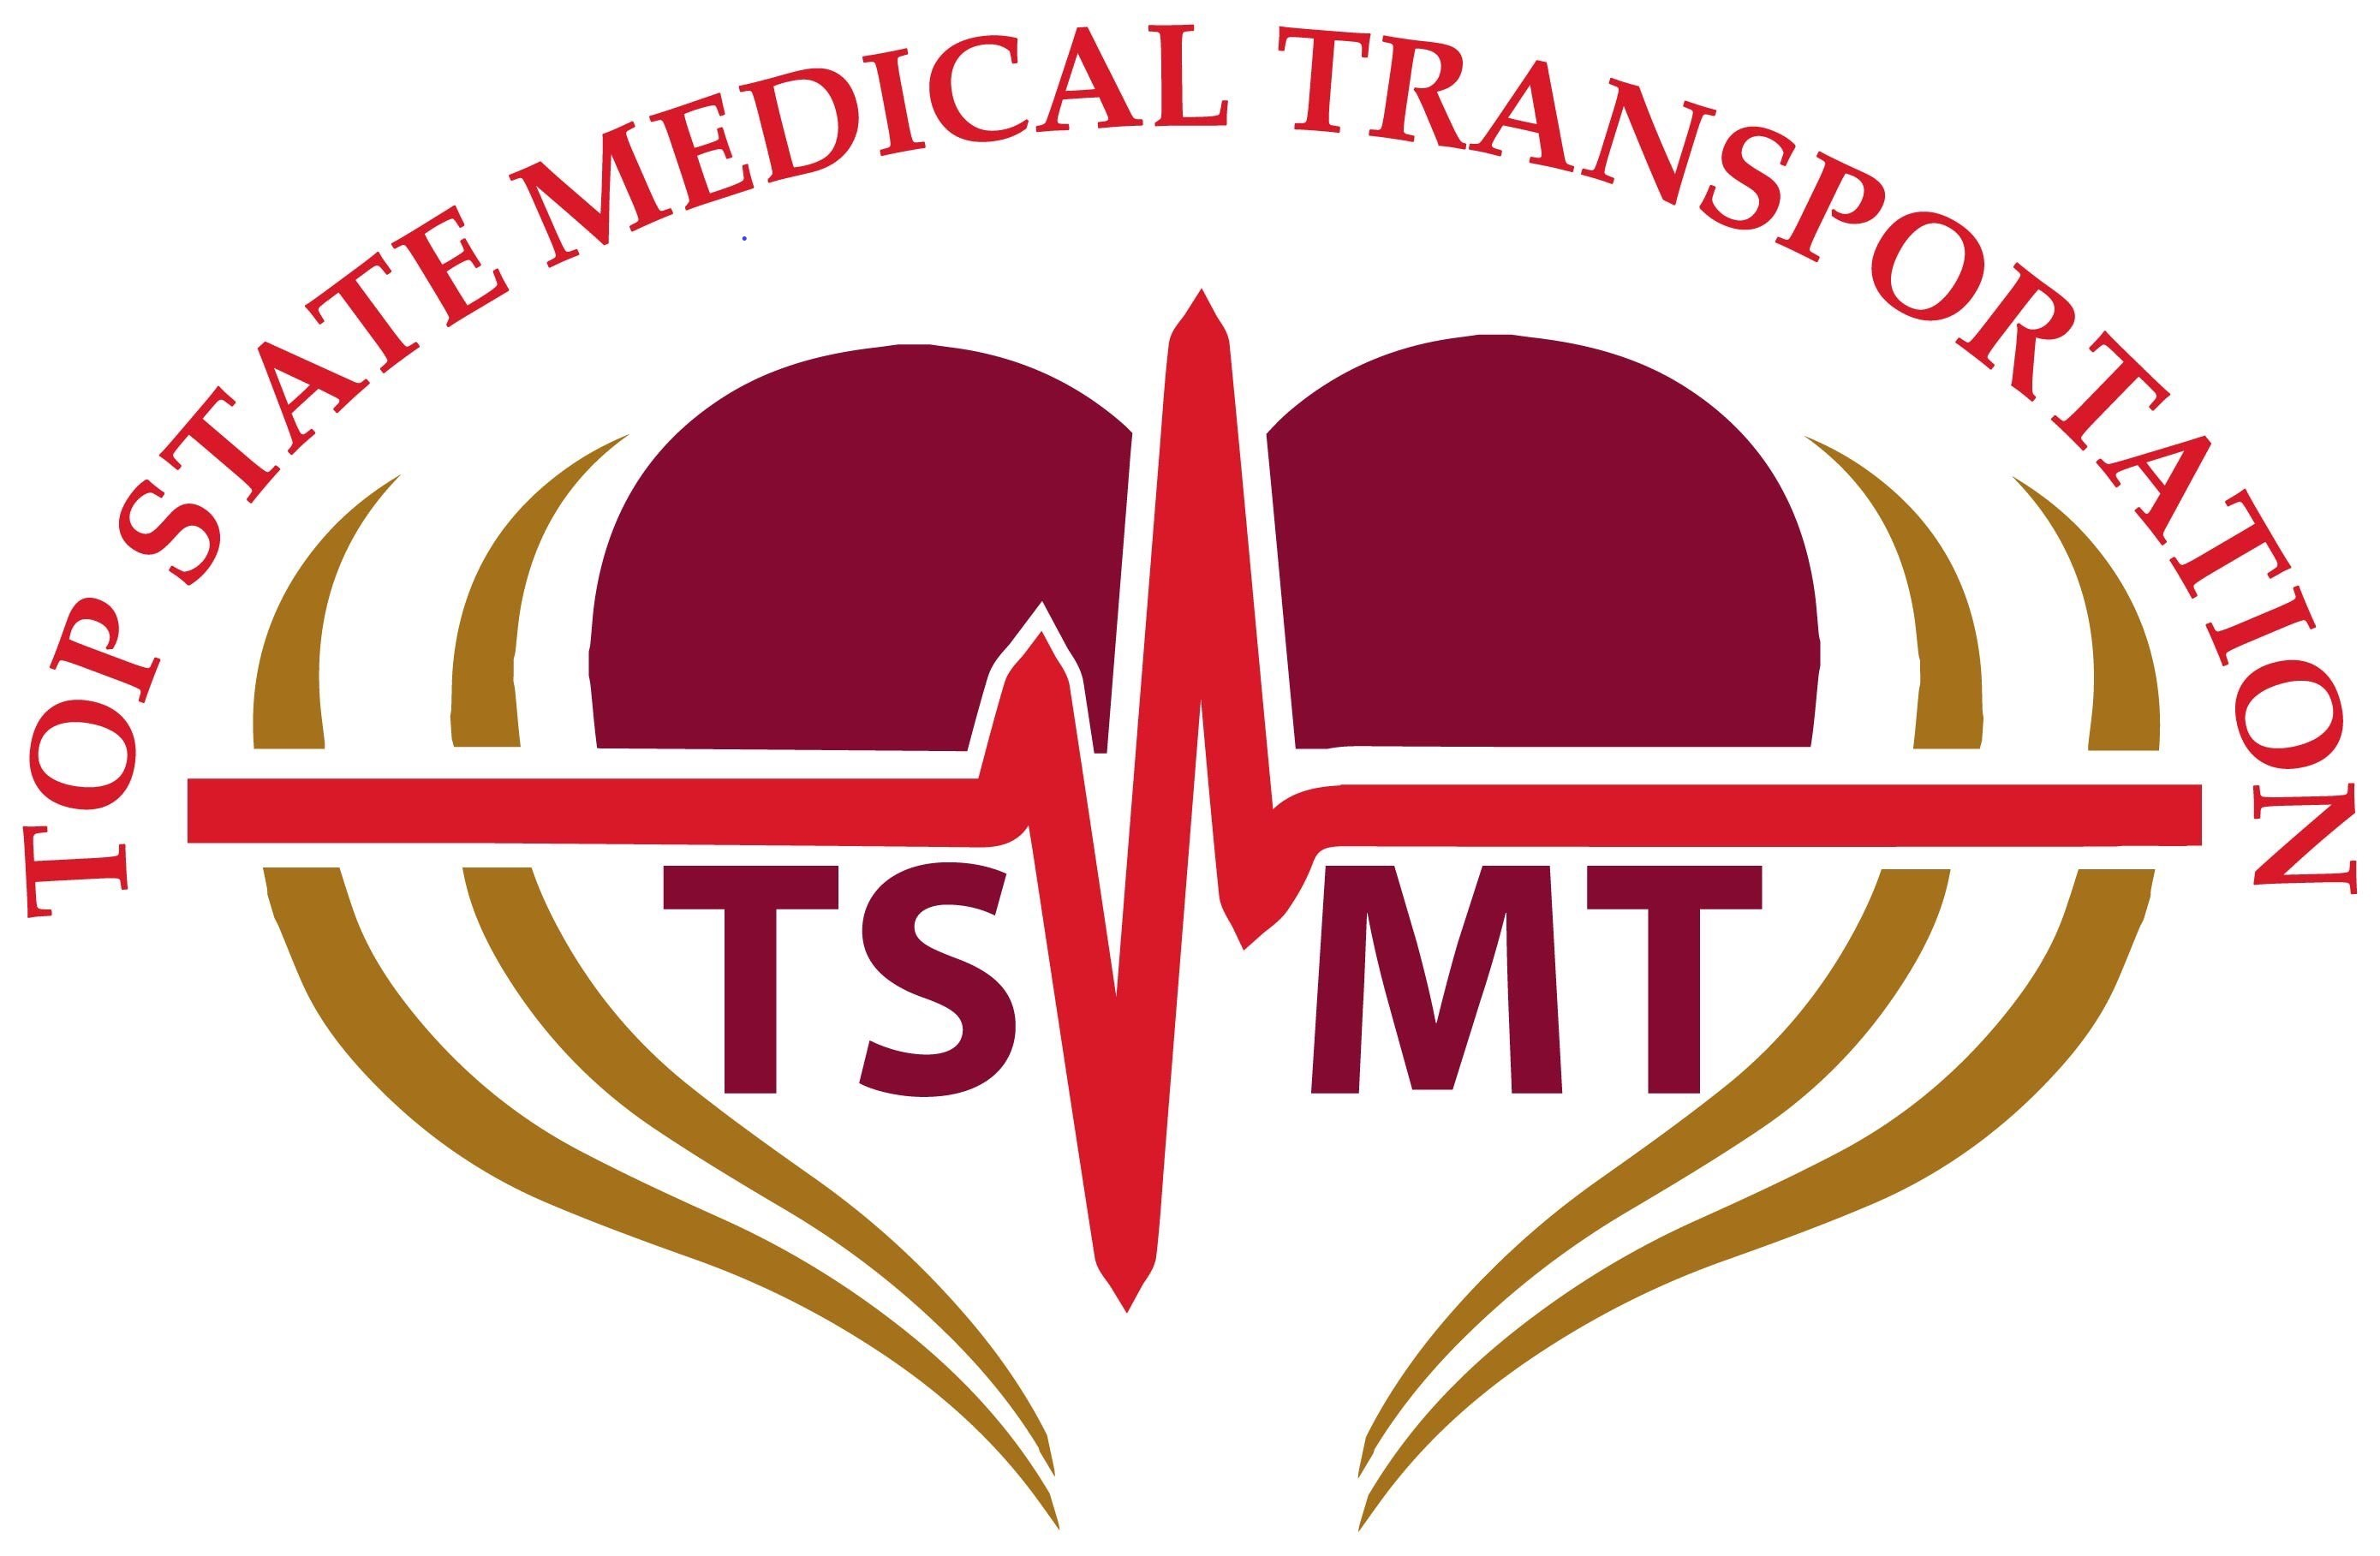 Top State Medical Transportation